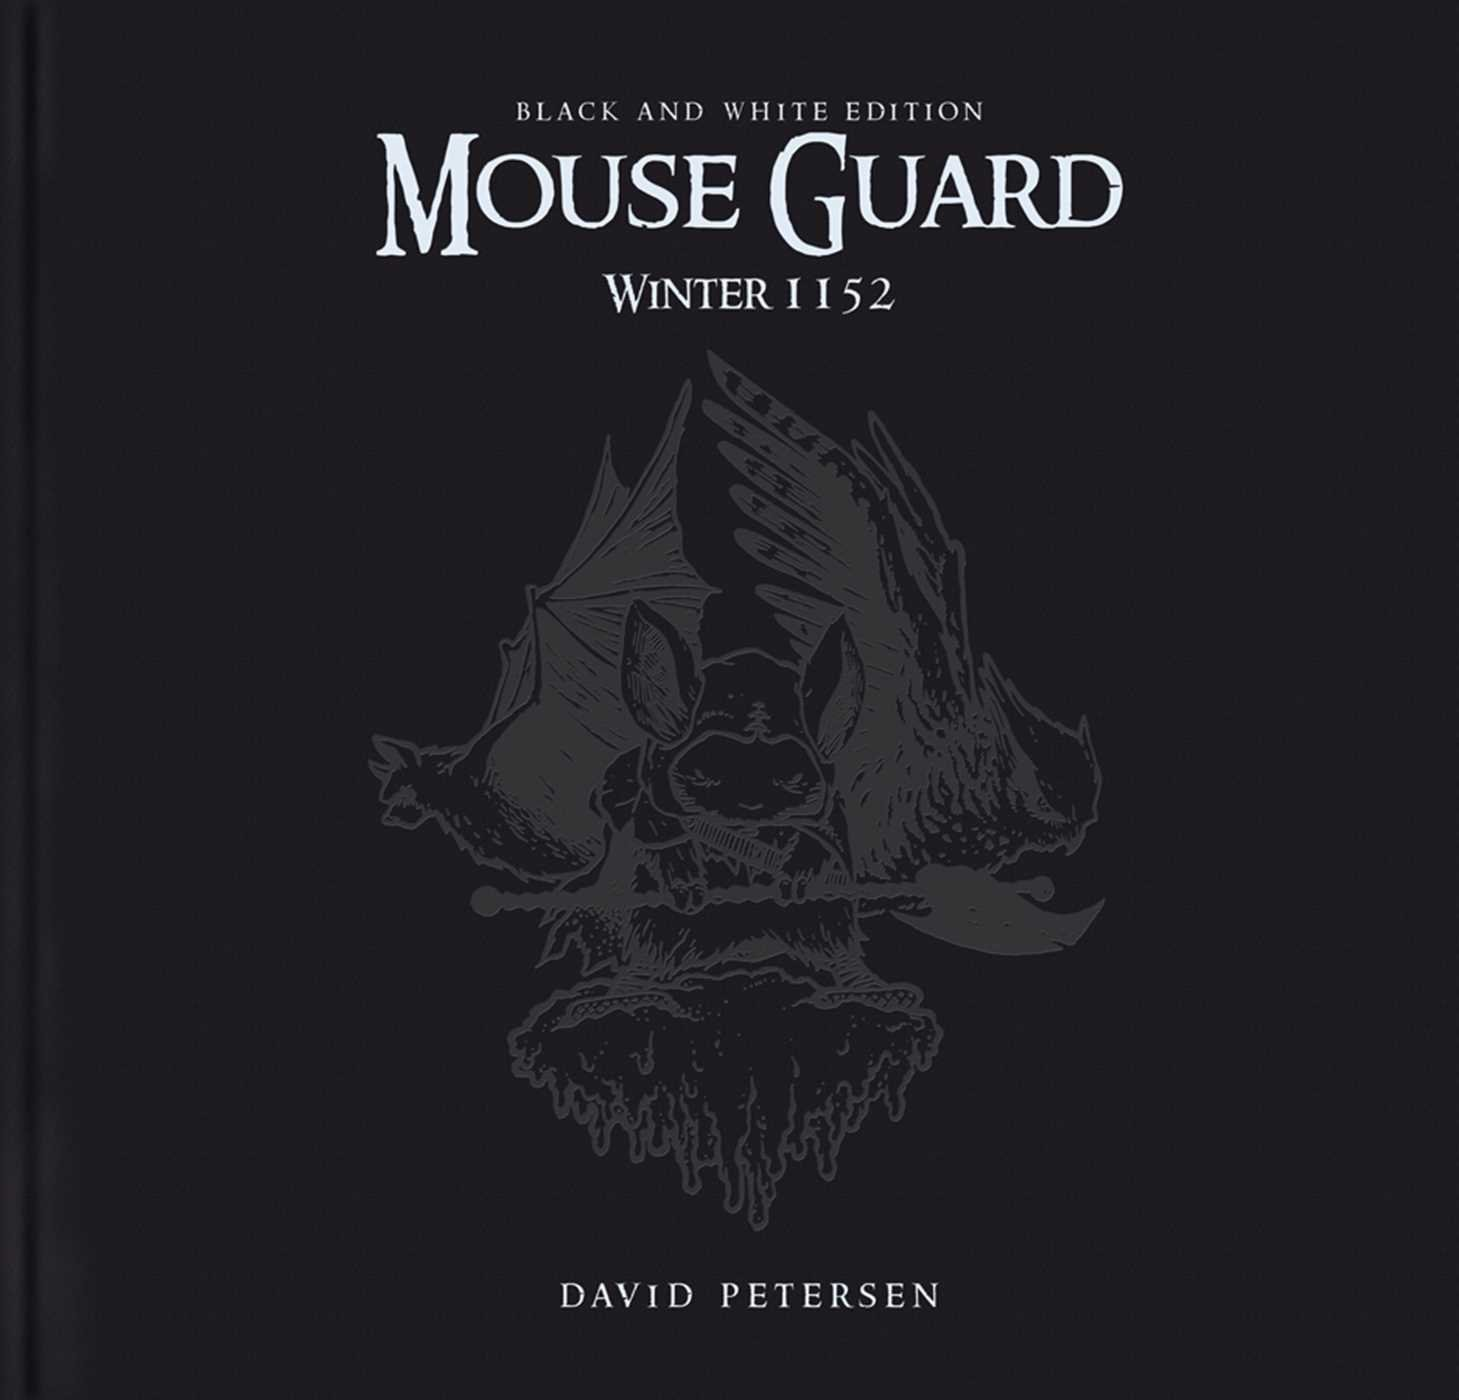 Mouse Guard Volume 2: Winter 1152 Black and White Edition pdf